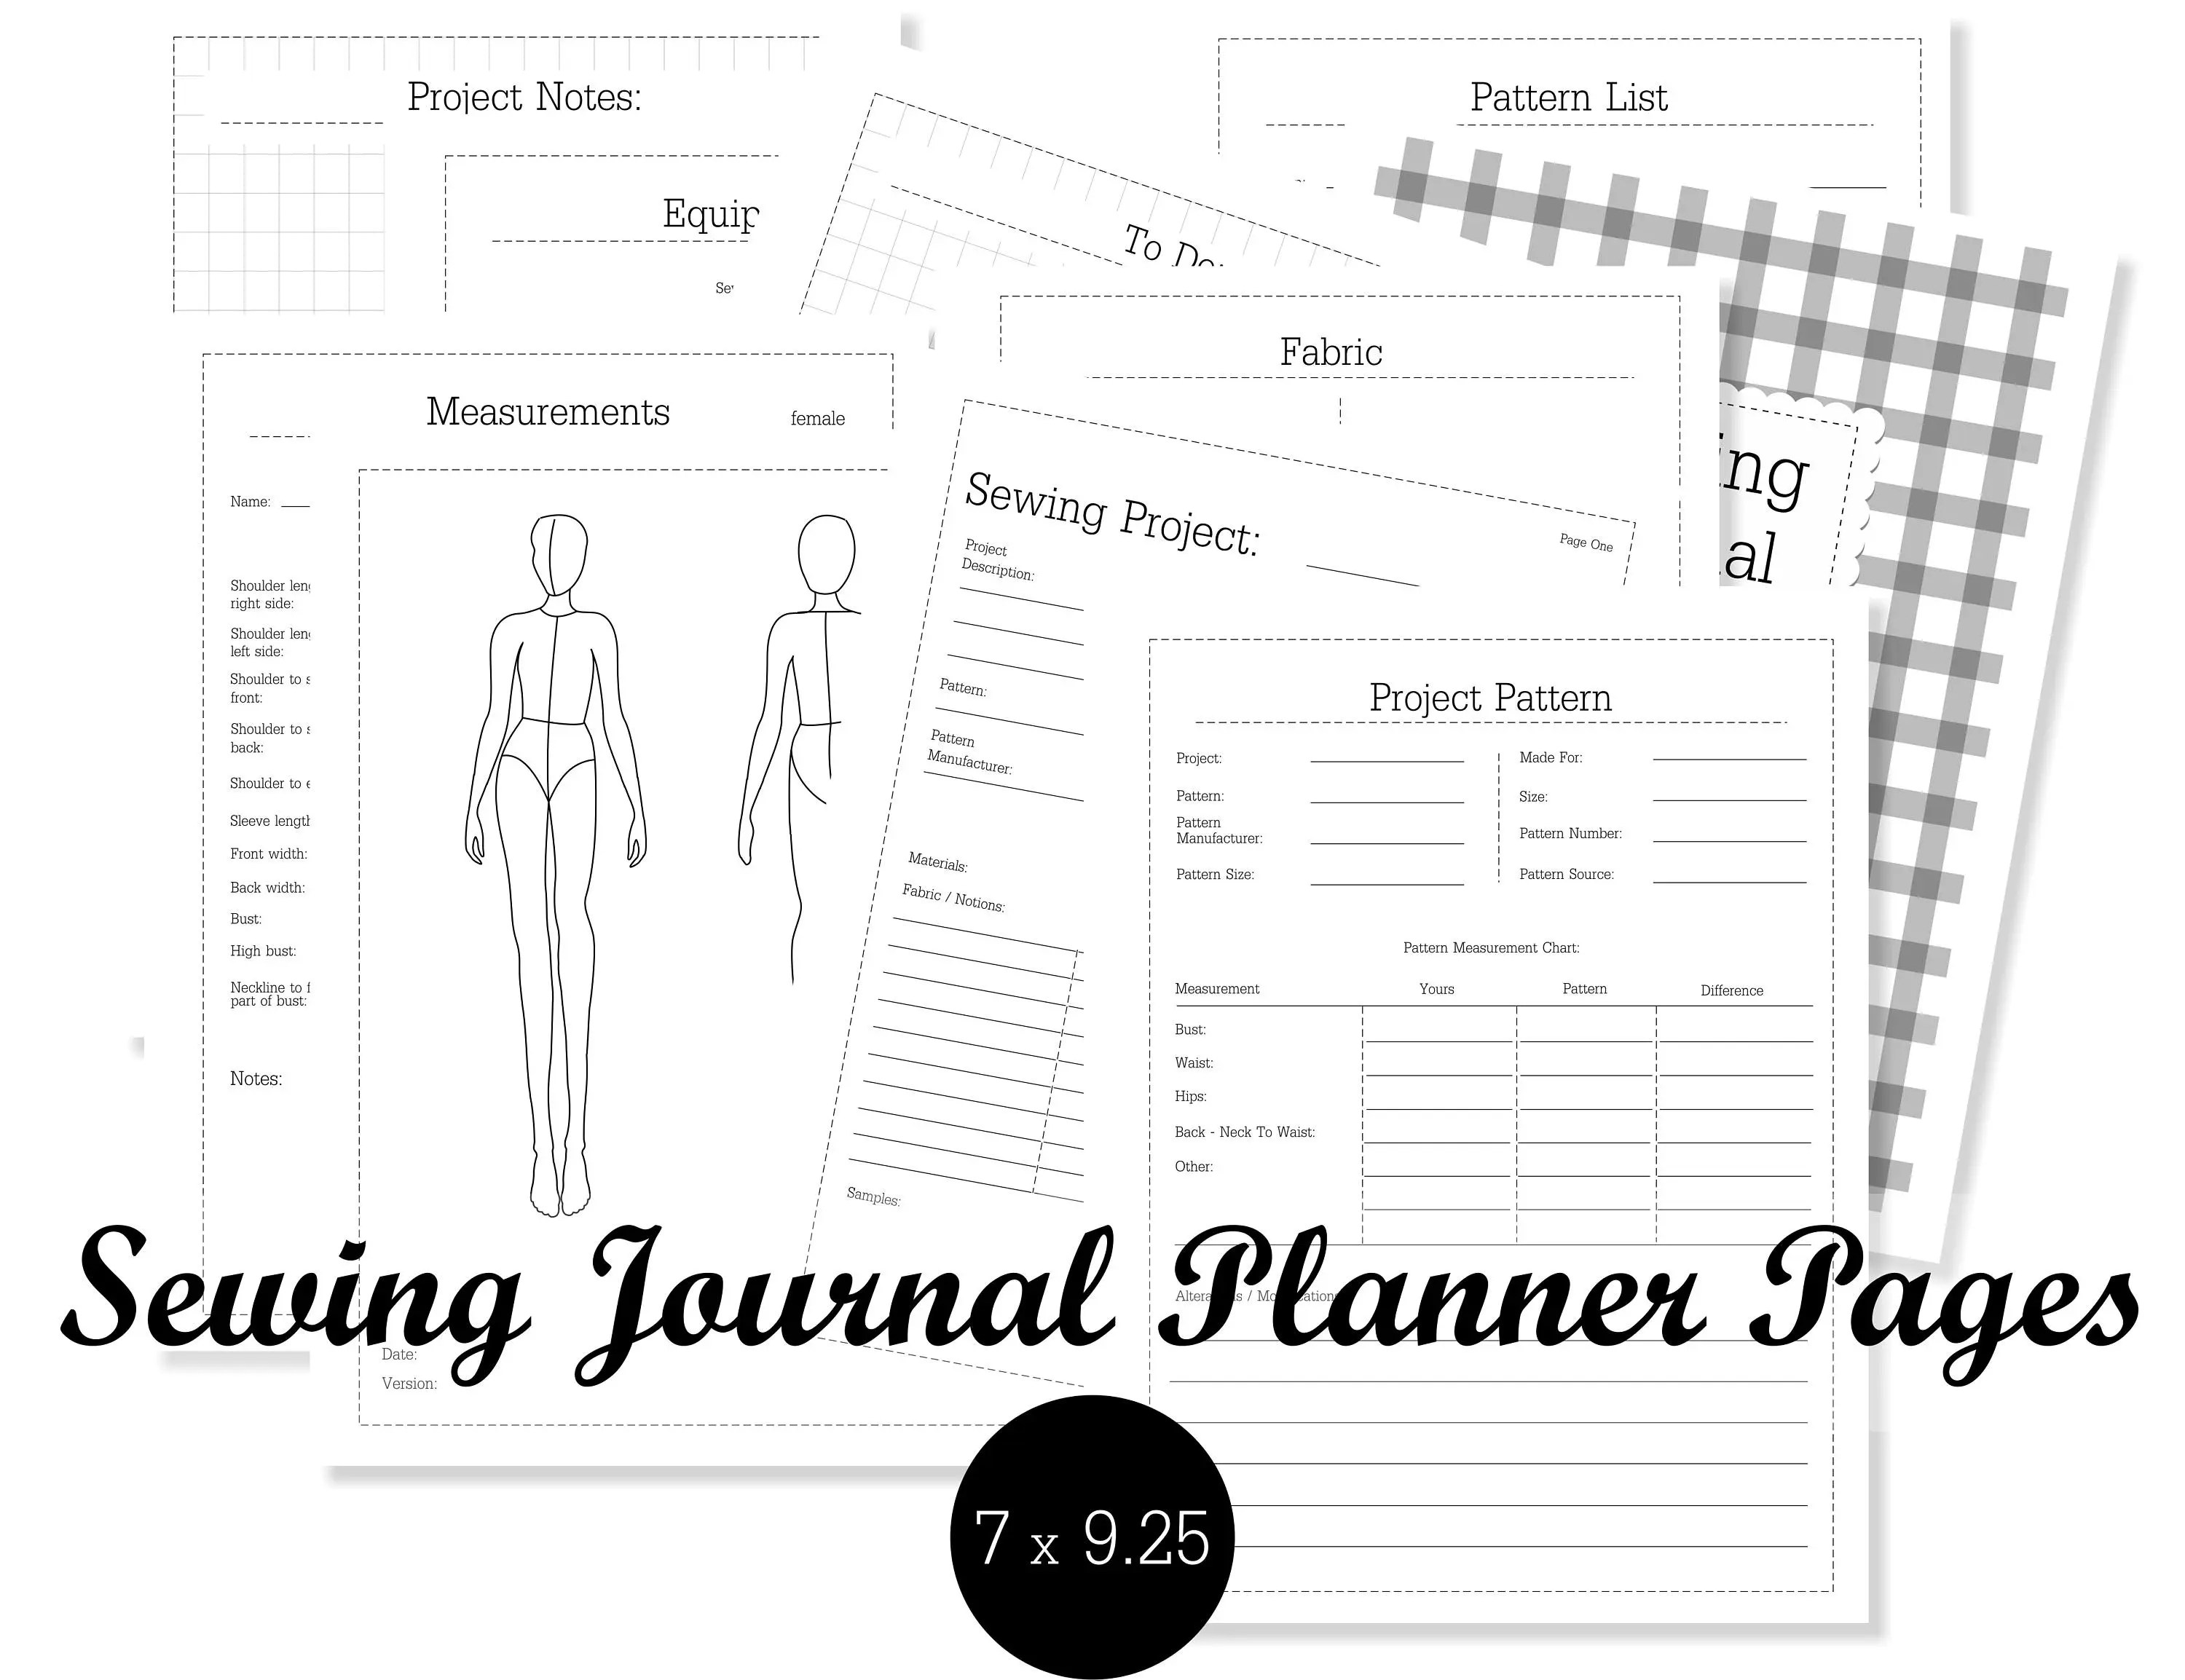 Sewing Journal Planner Pages Sewing Disc bound Planner